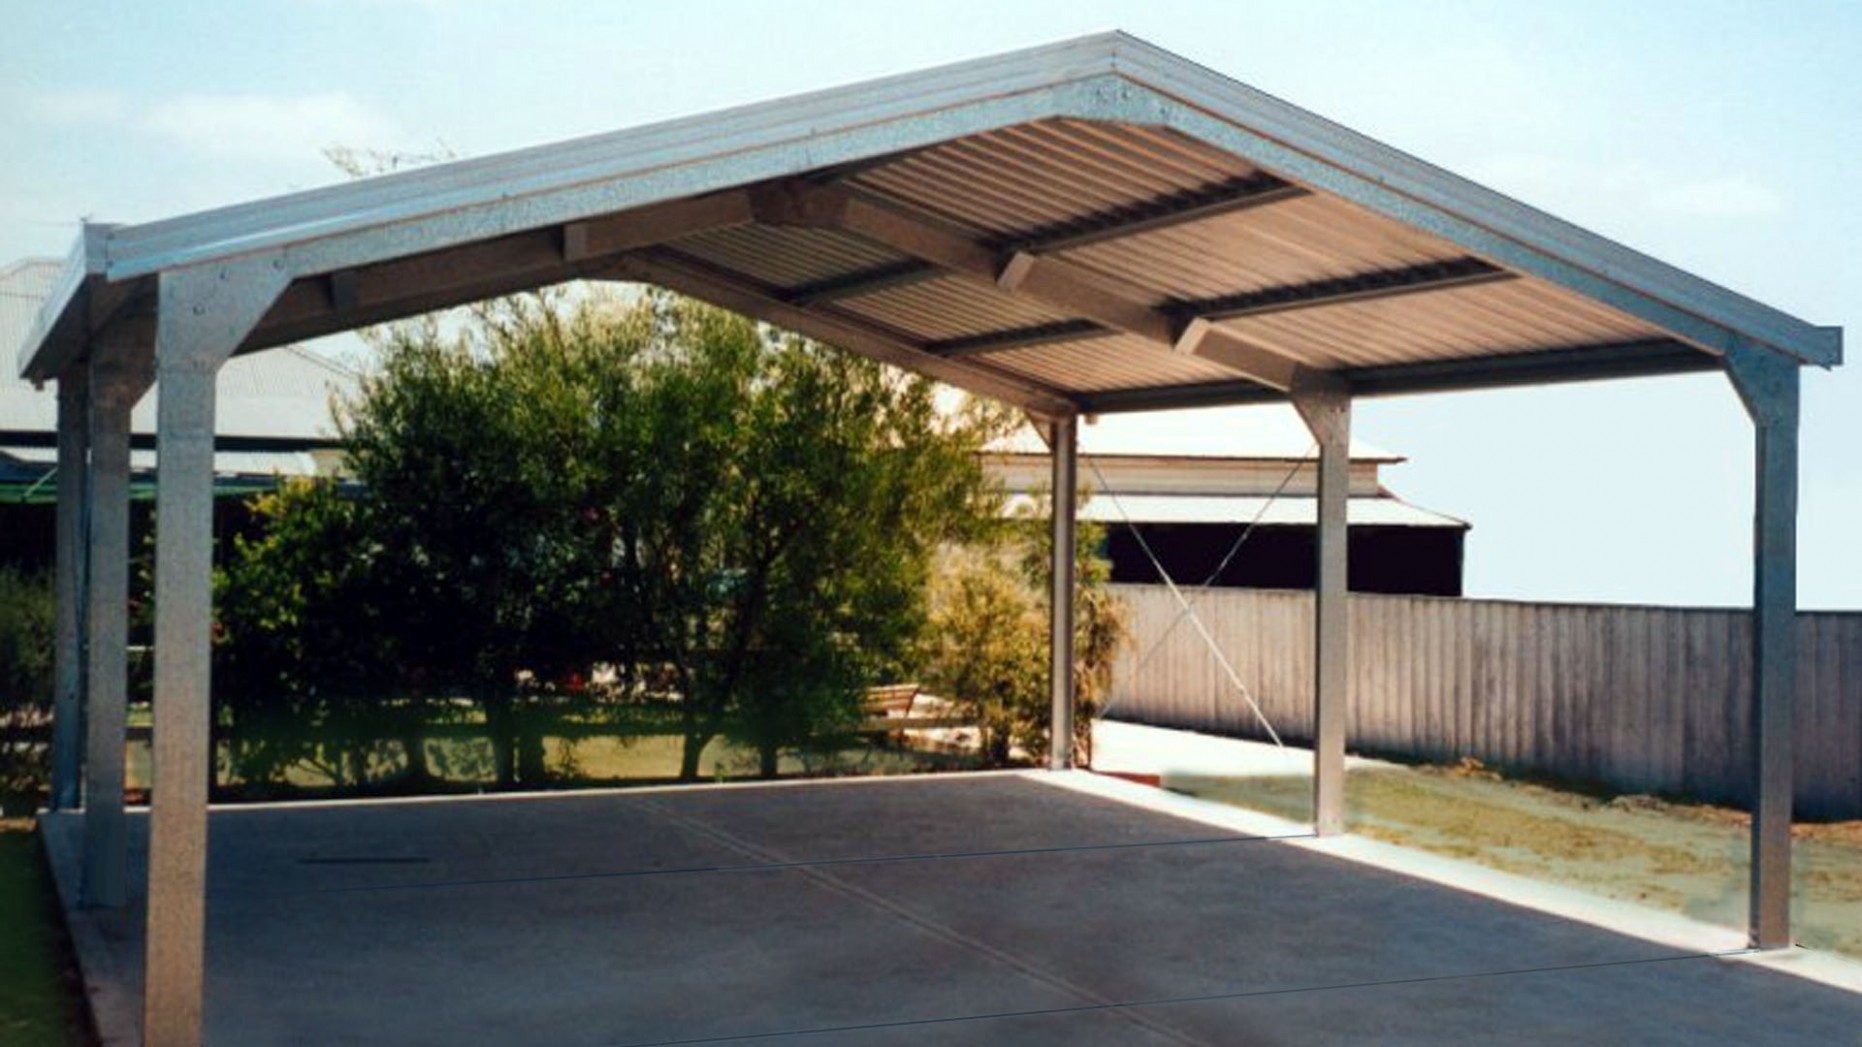 16 Unconventional Knowledge About Used Carports For Sale That You Can't Learn From Books | used carports for sale